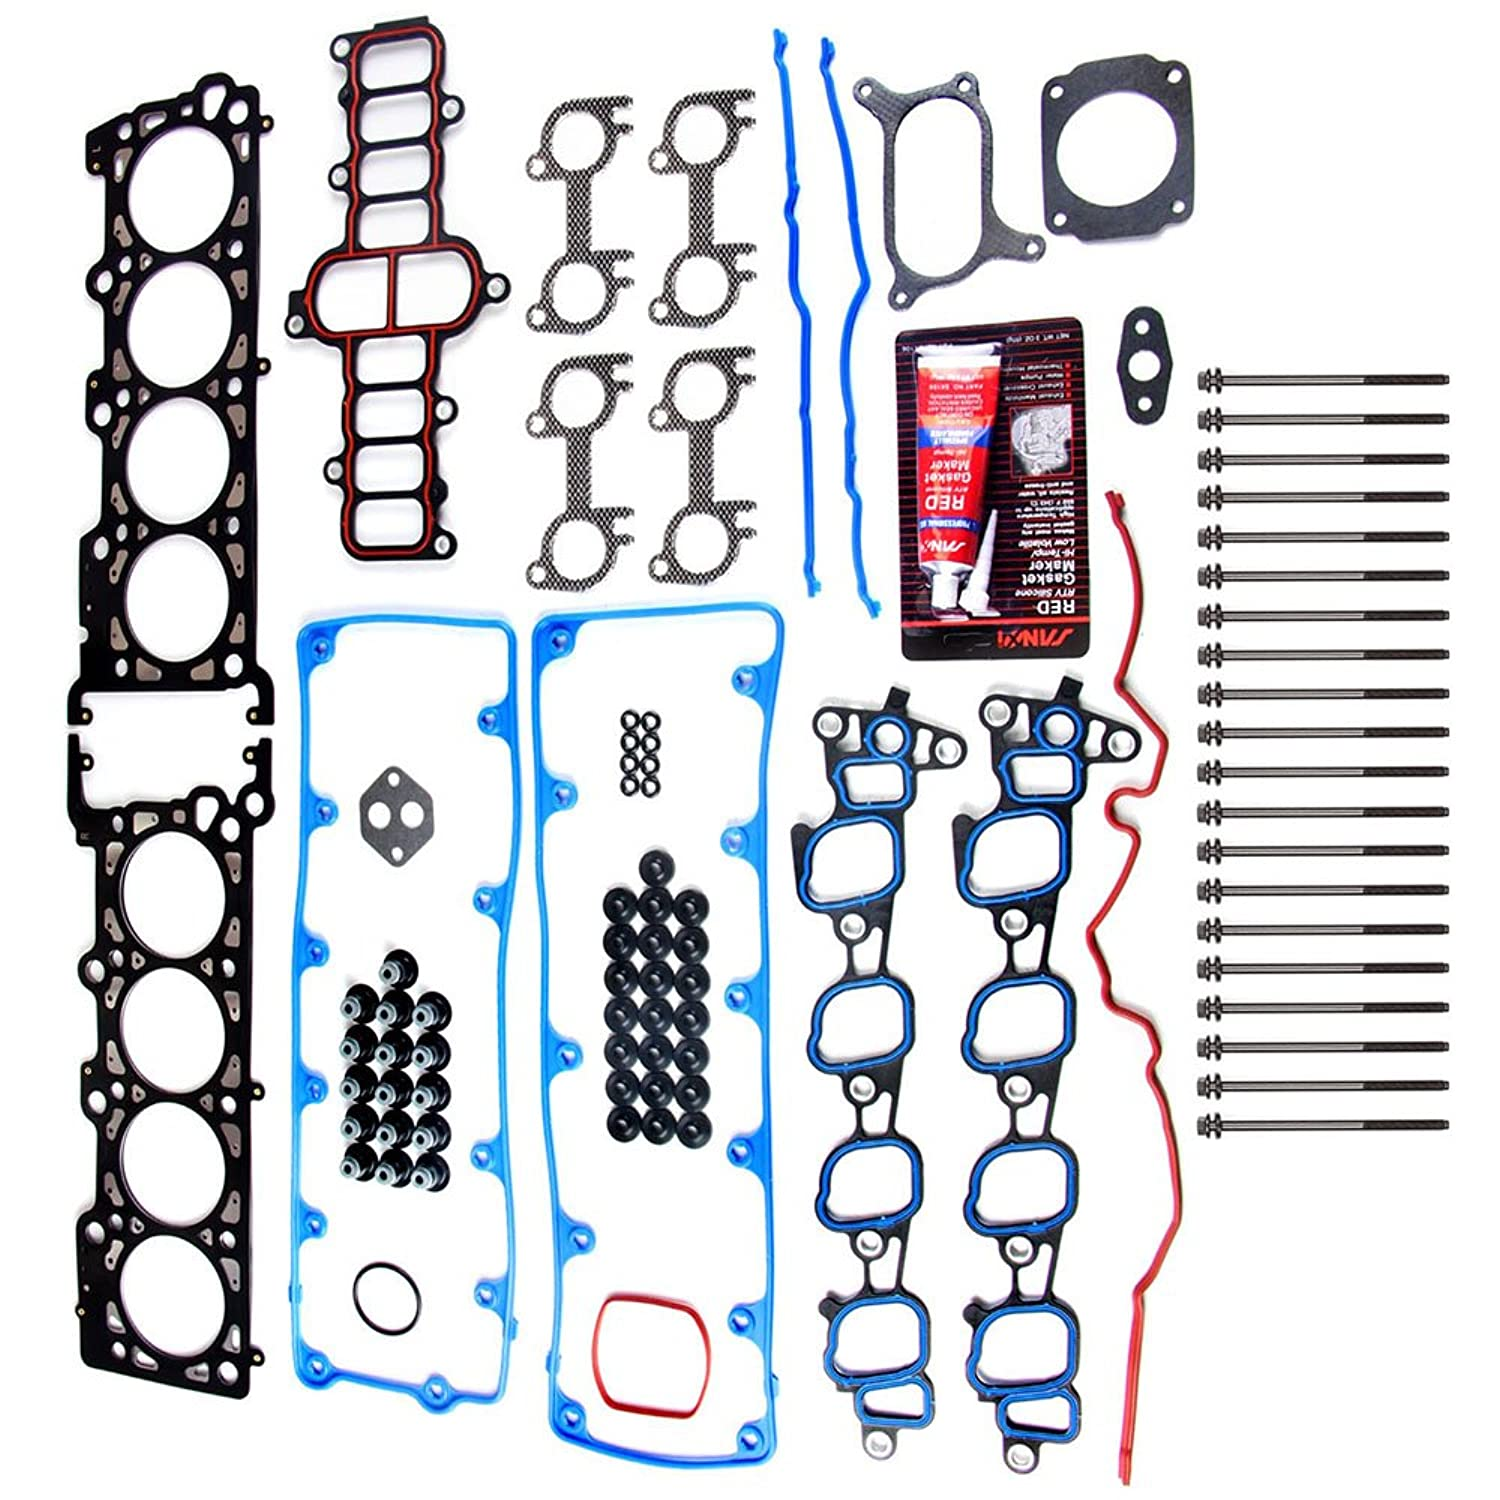 ECCPP Head Gasket Sets with Bolts Replacement for Automotive Replacement Engine Head Gasket Kits for Ford E-150/E-250 F-150 Expedition E-150 Econoline 2002-2004 4.6L 5.4L V8 SOHC